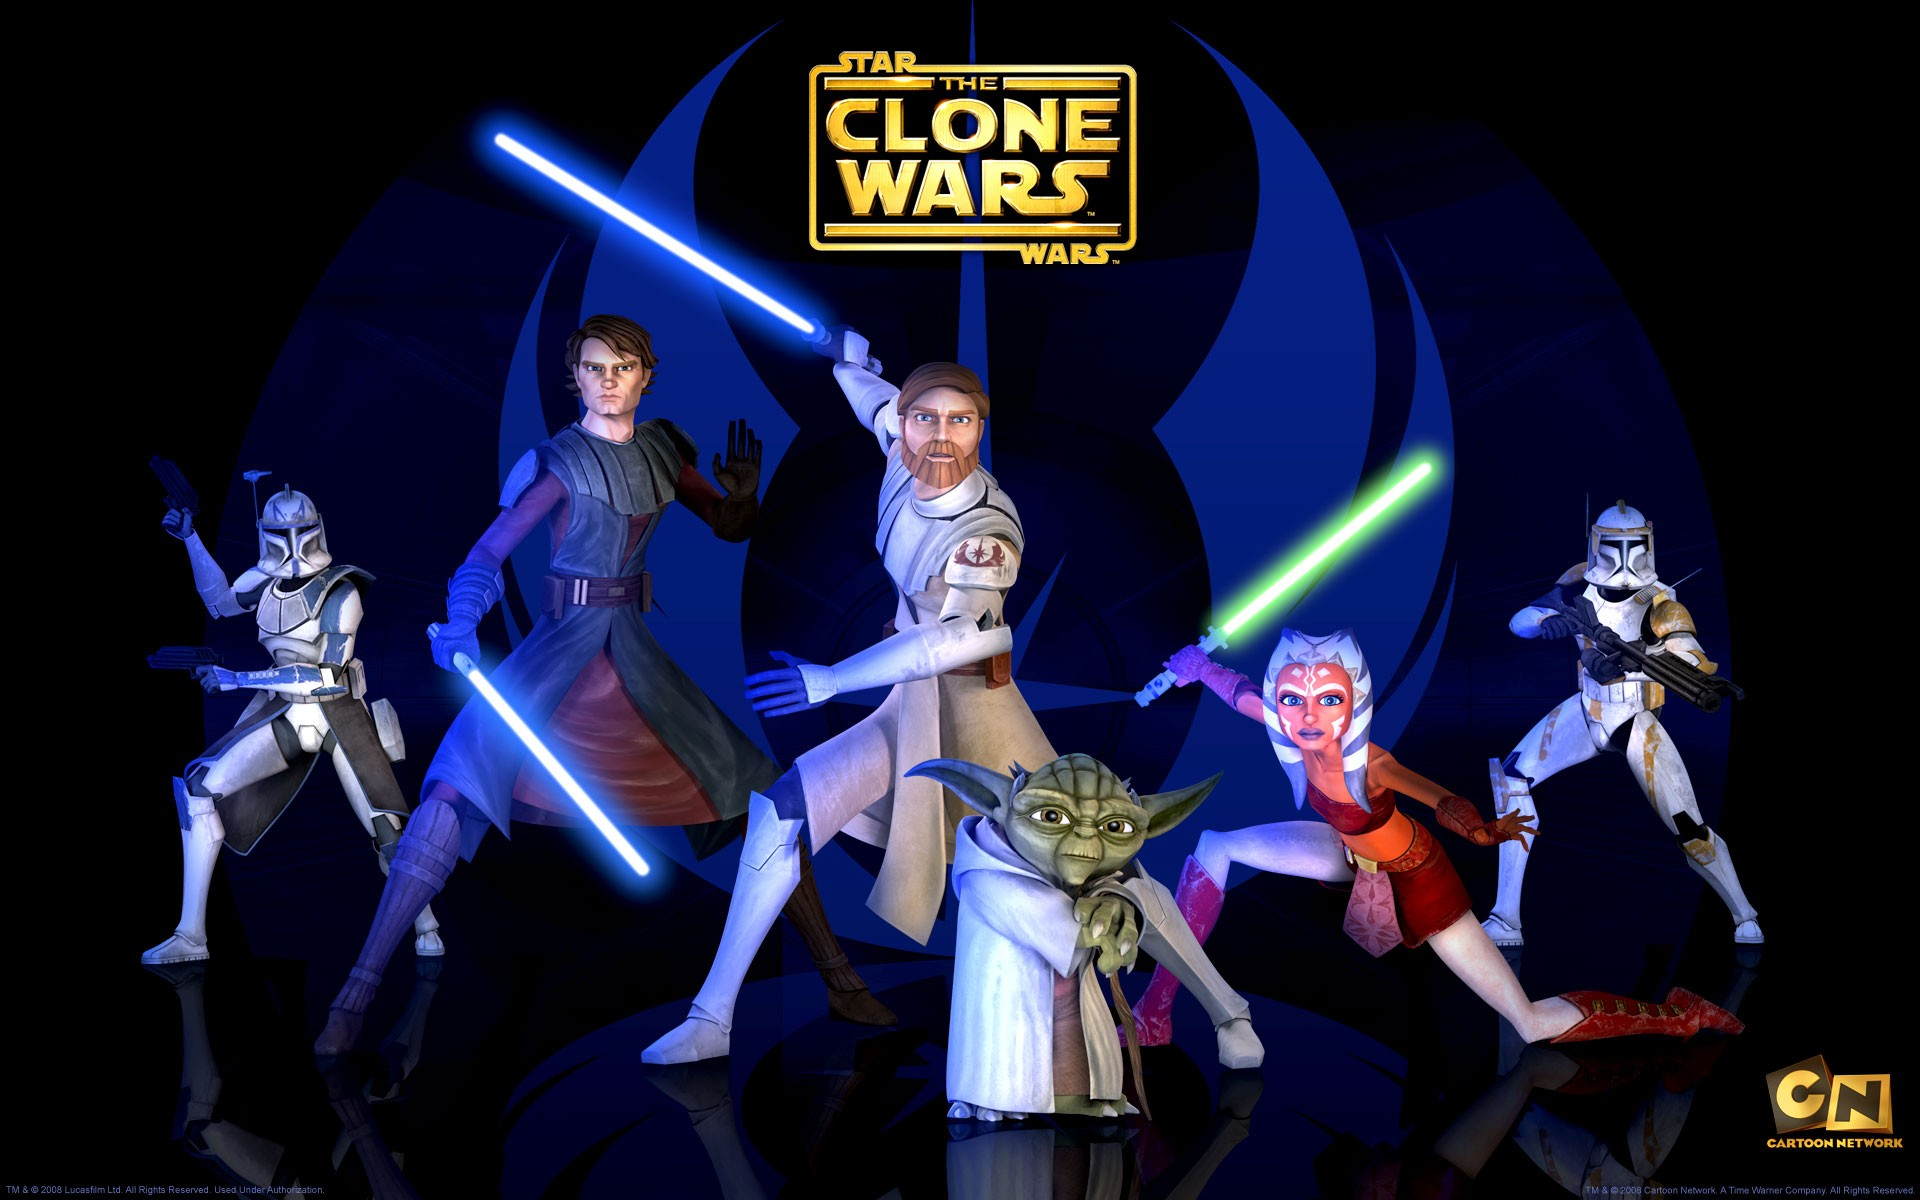 Star Wars The Clone Wars Wallpaper: Star Wars: The Clone Wars Full HD Wallpaper And Background